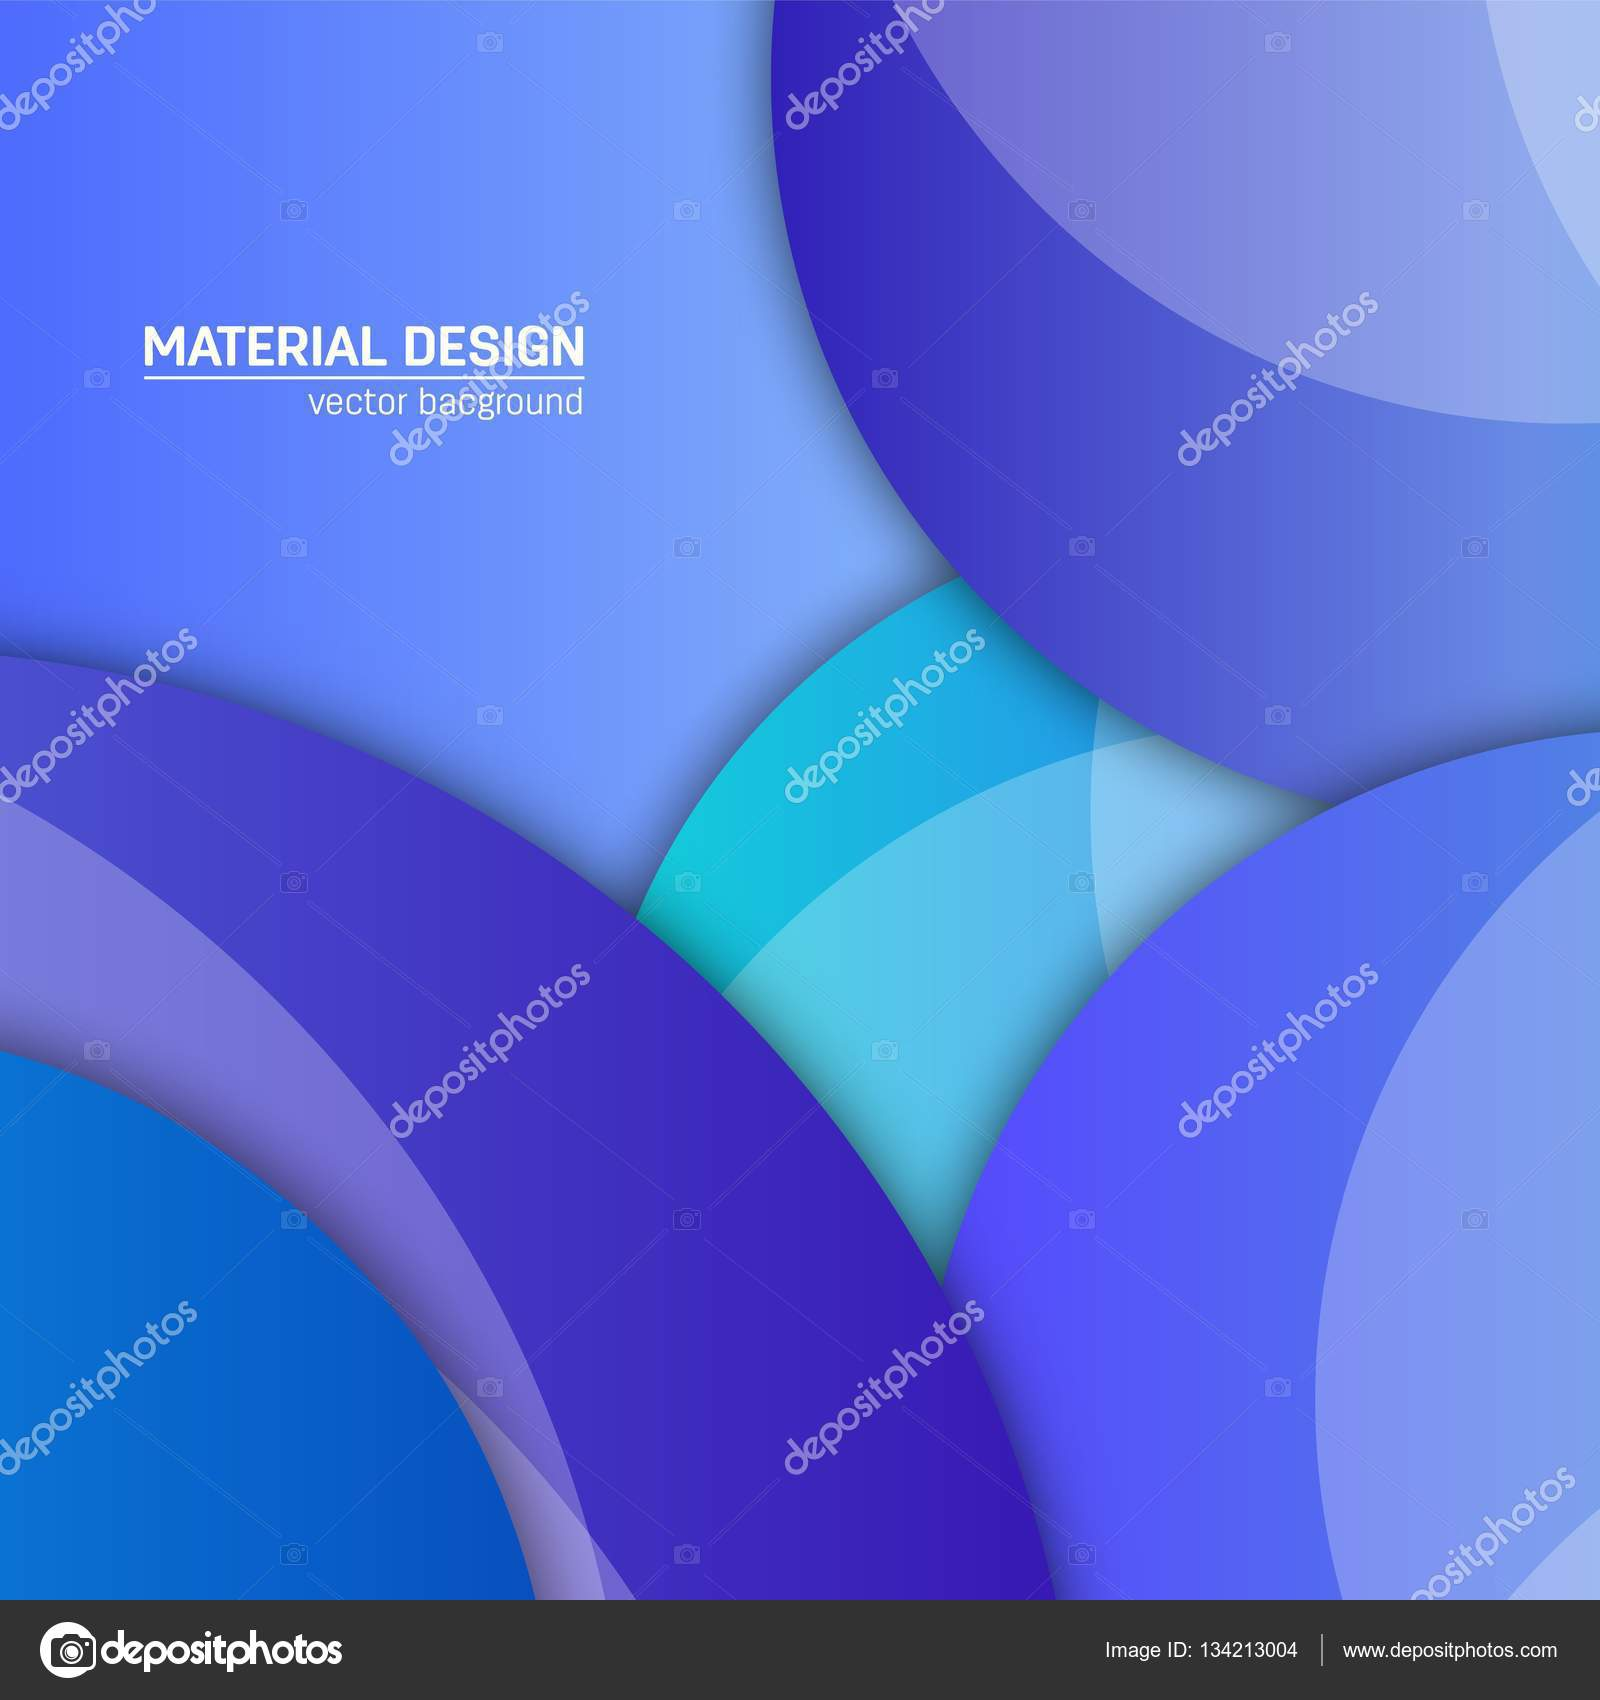 Vector material design background abstract creative concept layout abstract creative concept layout template for web and mobile app maxwellsz